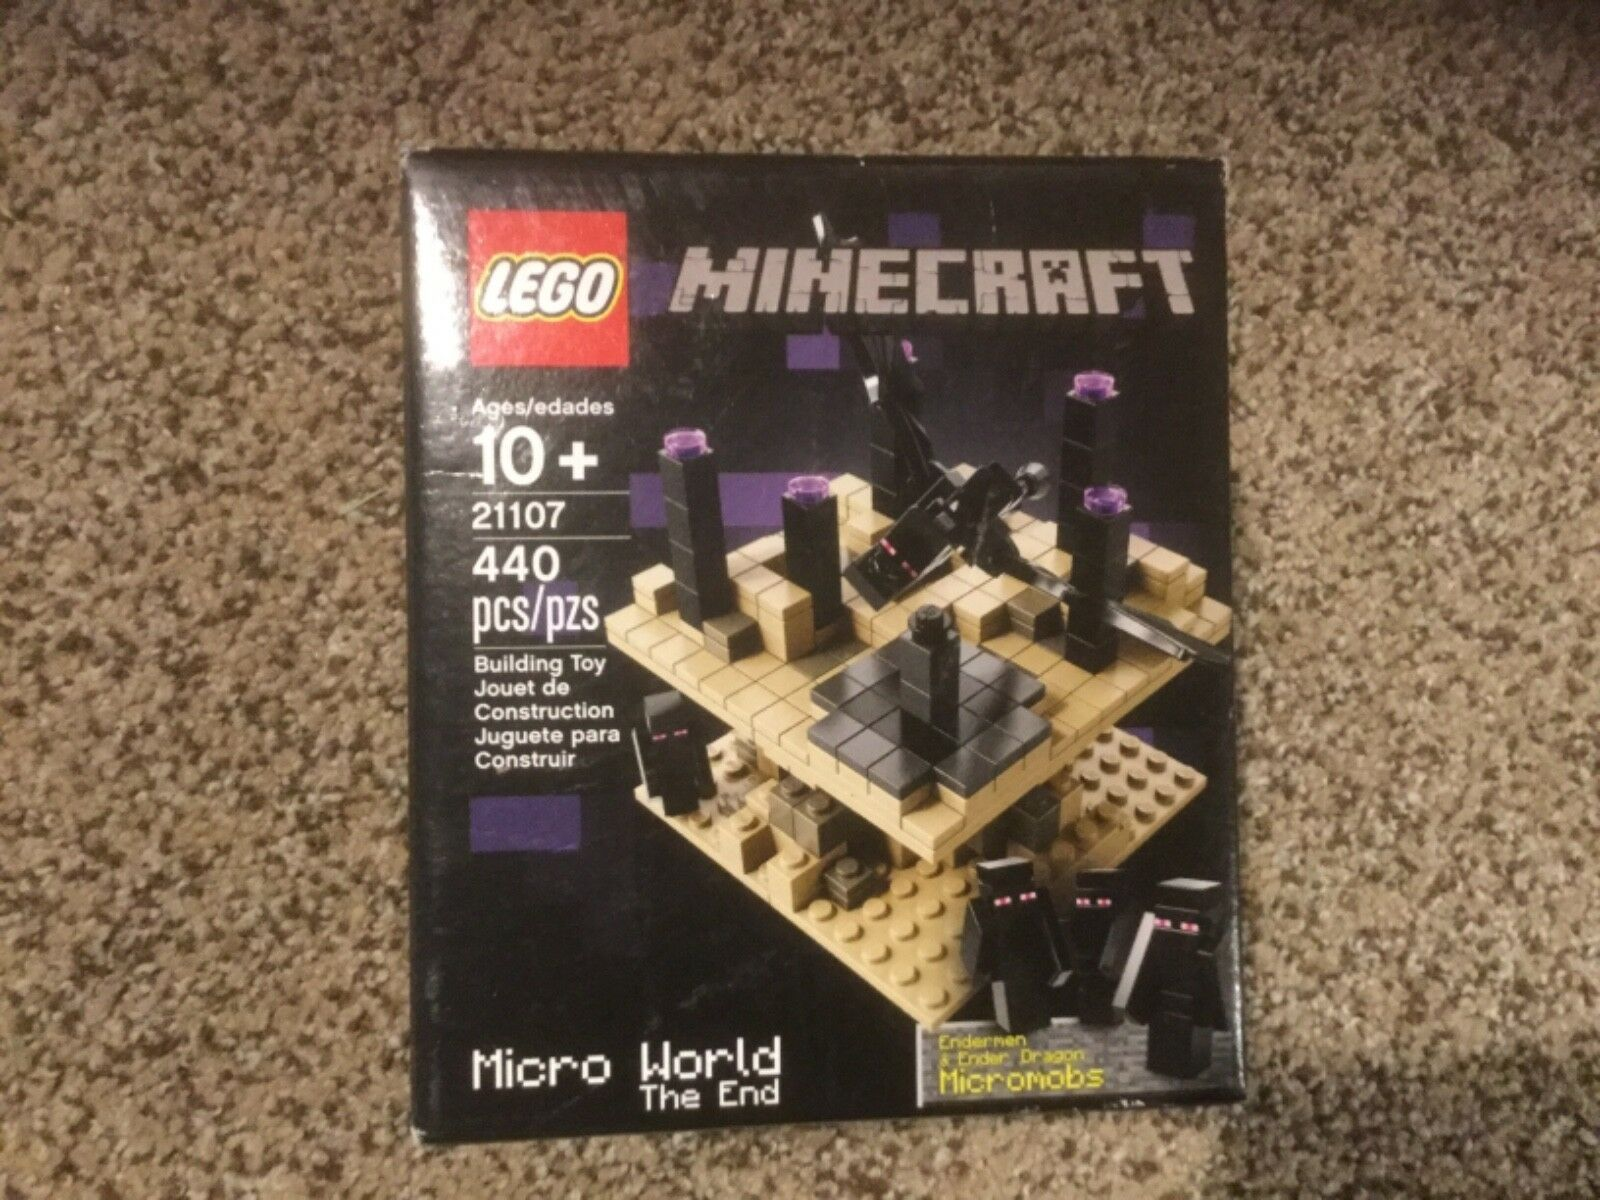 NIB LEGO Minecraft Micro World-The End  21107